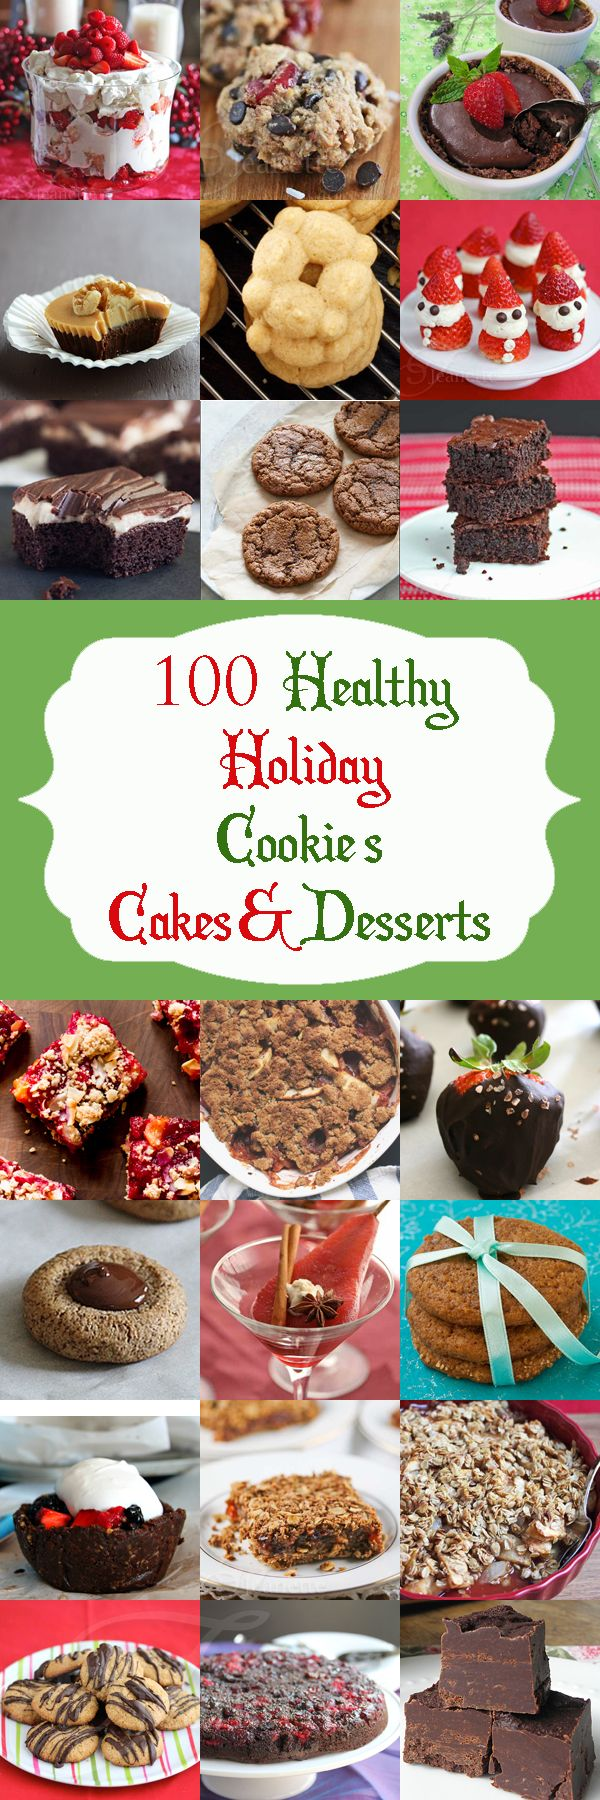 100+ Healthy Christmas and Holiday Dessert Recipes - Jeanette's Healthy Living (and Thanks for including some of my recipes!)